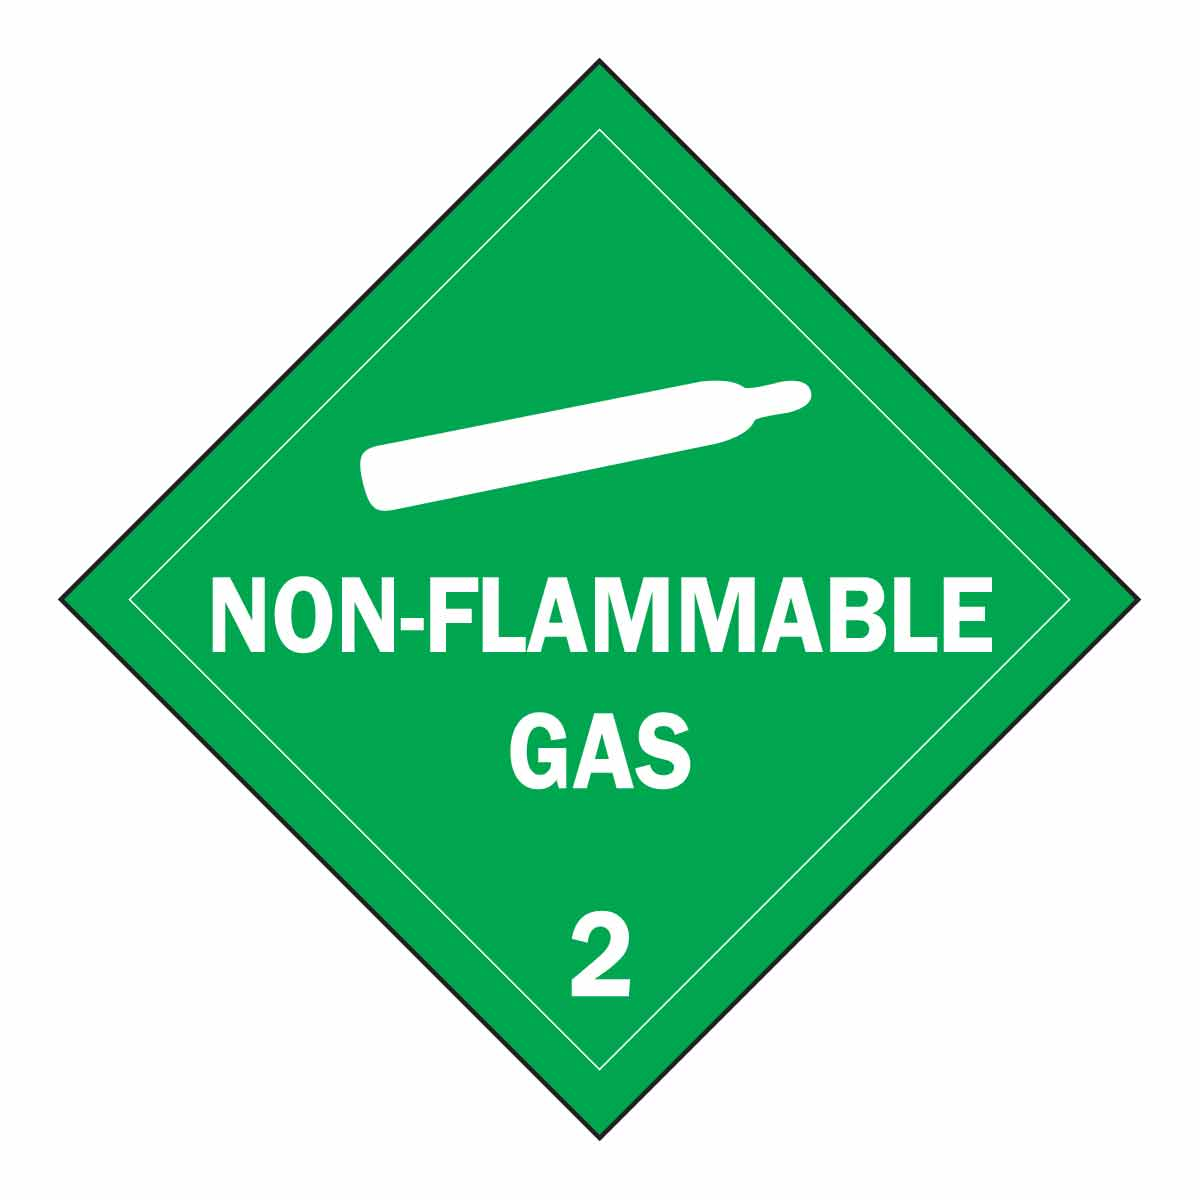 Brady® 63407 Diamond Stationary Vehicle Placard Sign, NON-FLAMMABLE GAS 2 Legend, Green on White, 10-3/4 in H, B-946 Vinyl, Self-Adhesive Mount